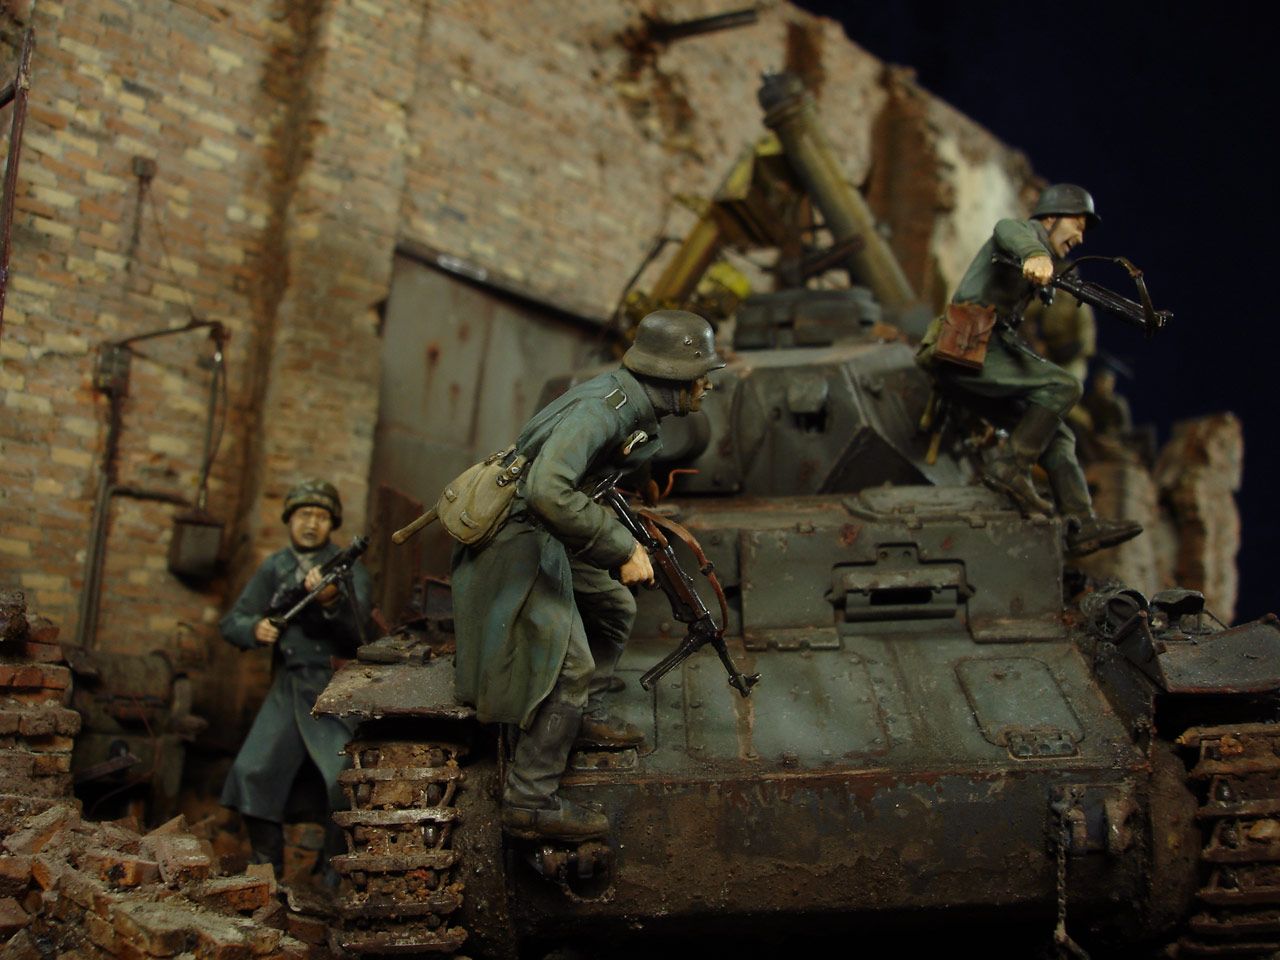 Stalingrad - Berlin: Double model of two moments of World War II - 12